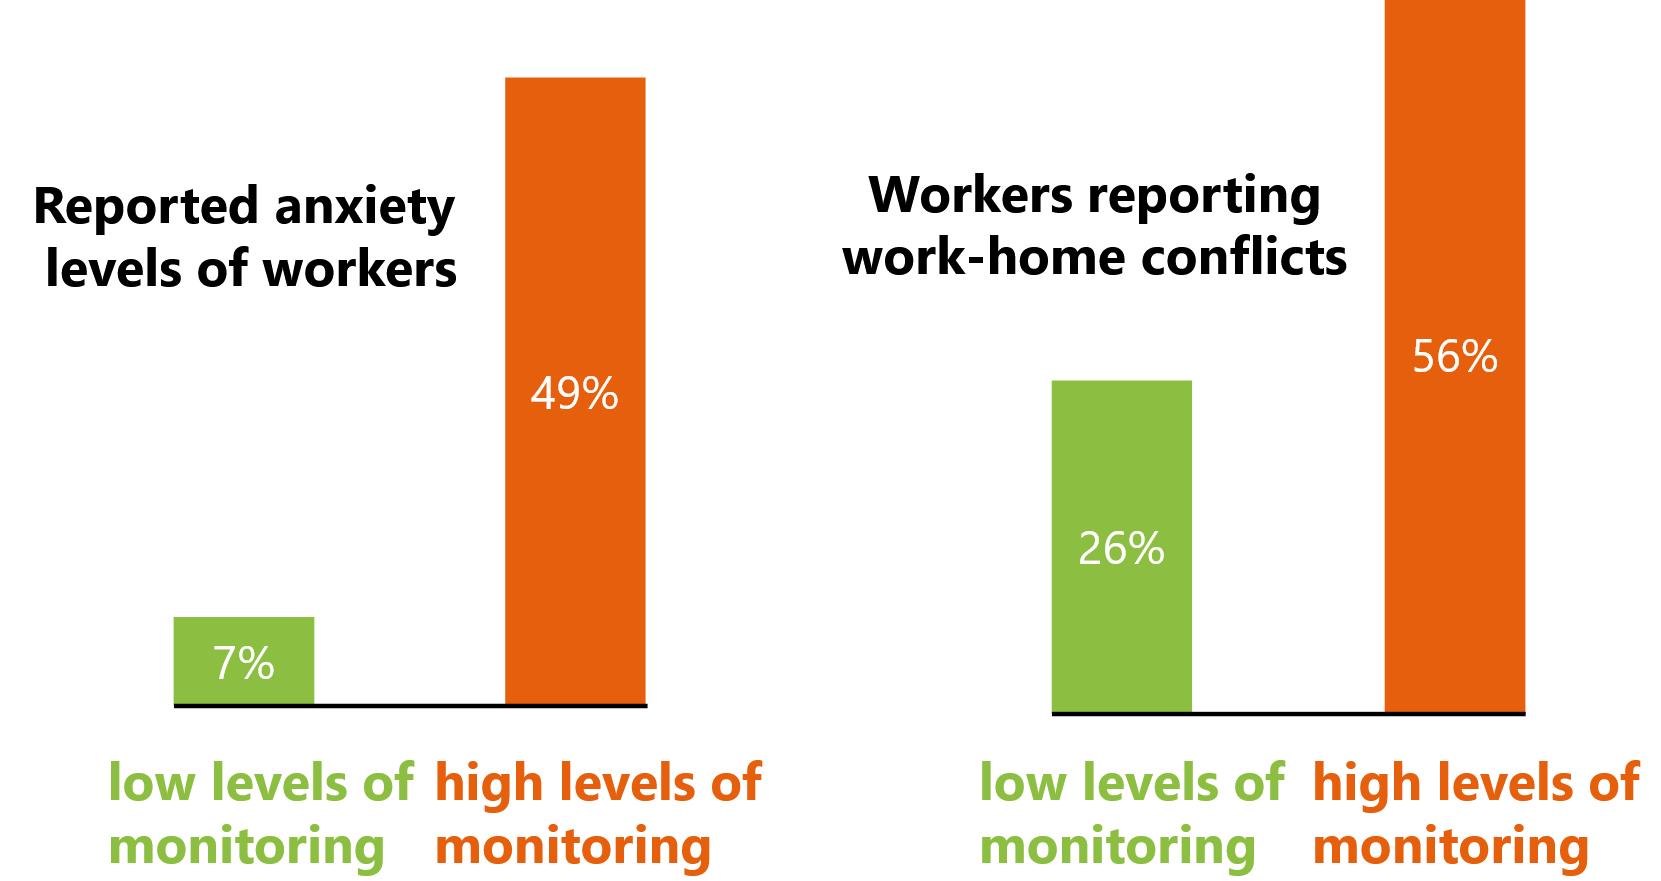 The Effect of Monitoring on Virtual Teams - HIgh levels of monitoring negatively impacts anxiety and work-home conflicts